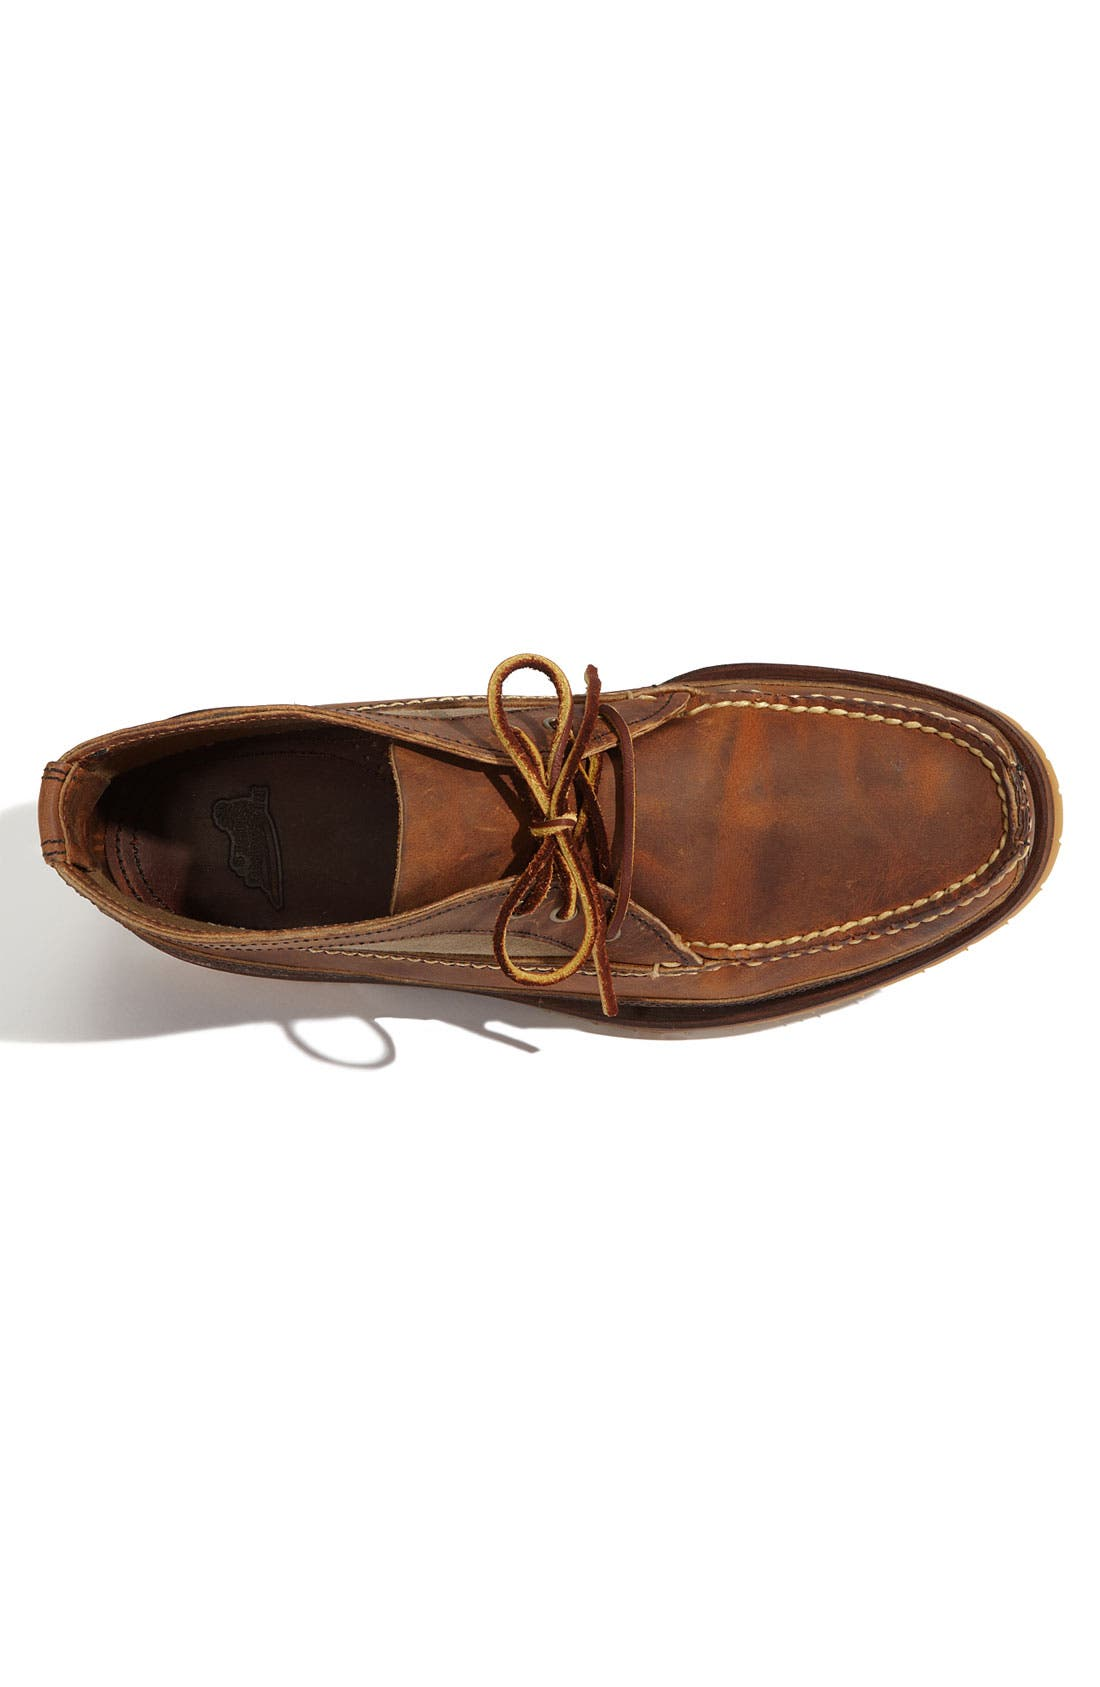 Alternate Image 3  - Red Wing 'Wabasha' Chukka Boot